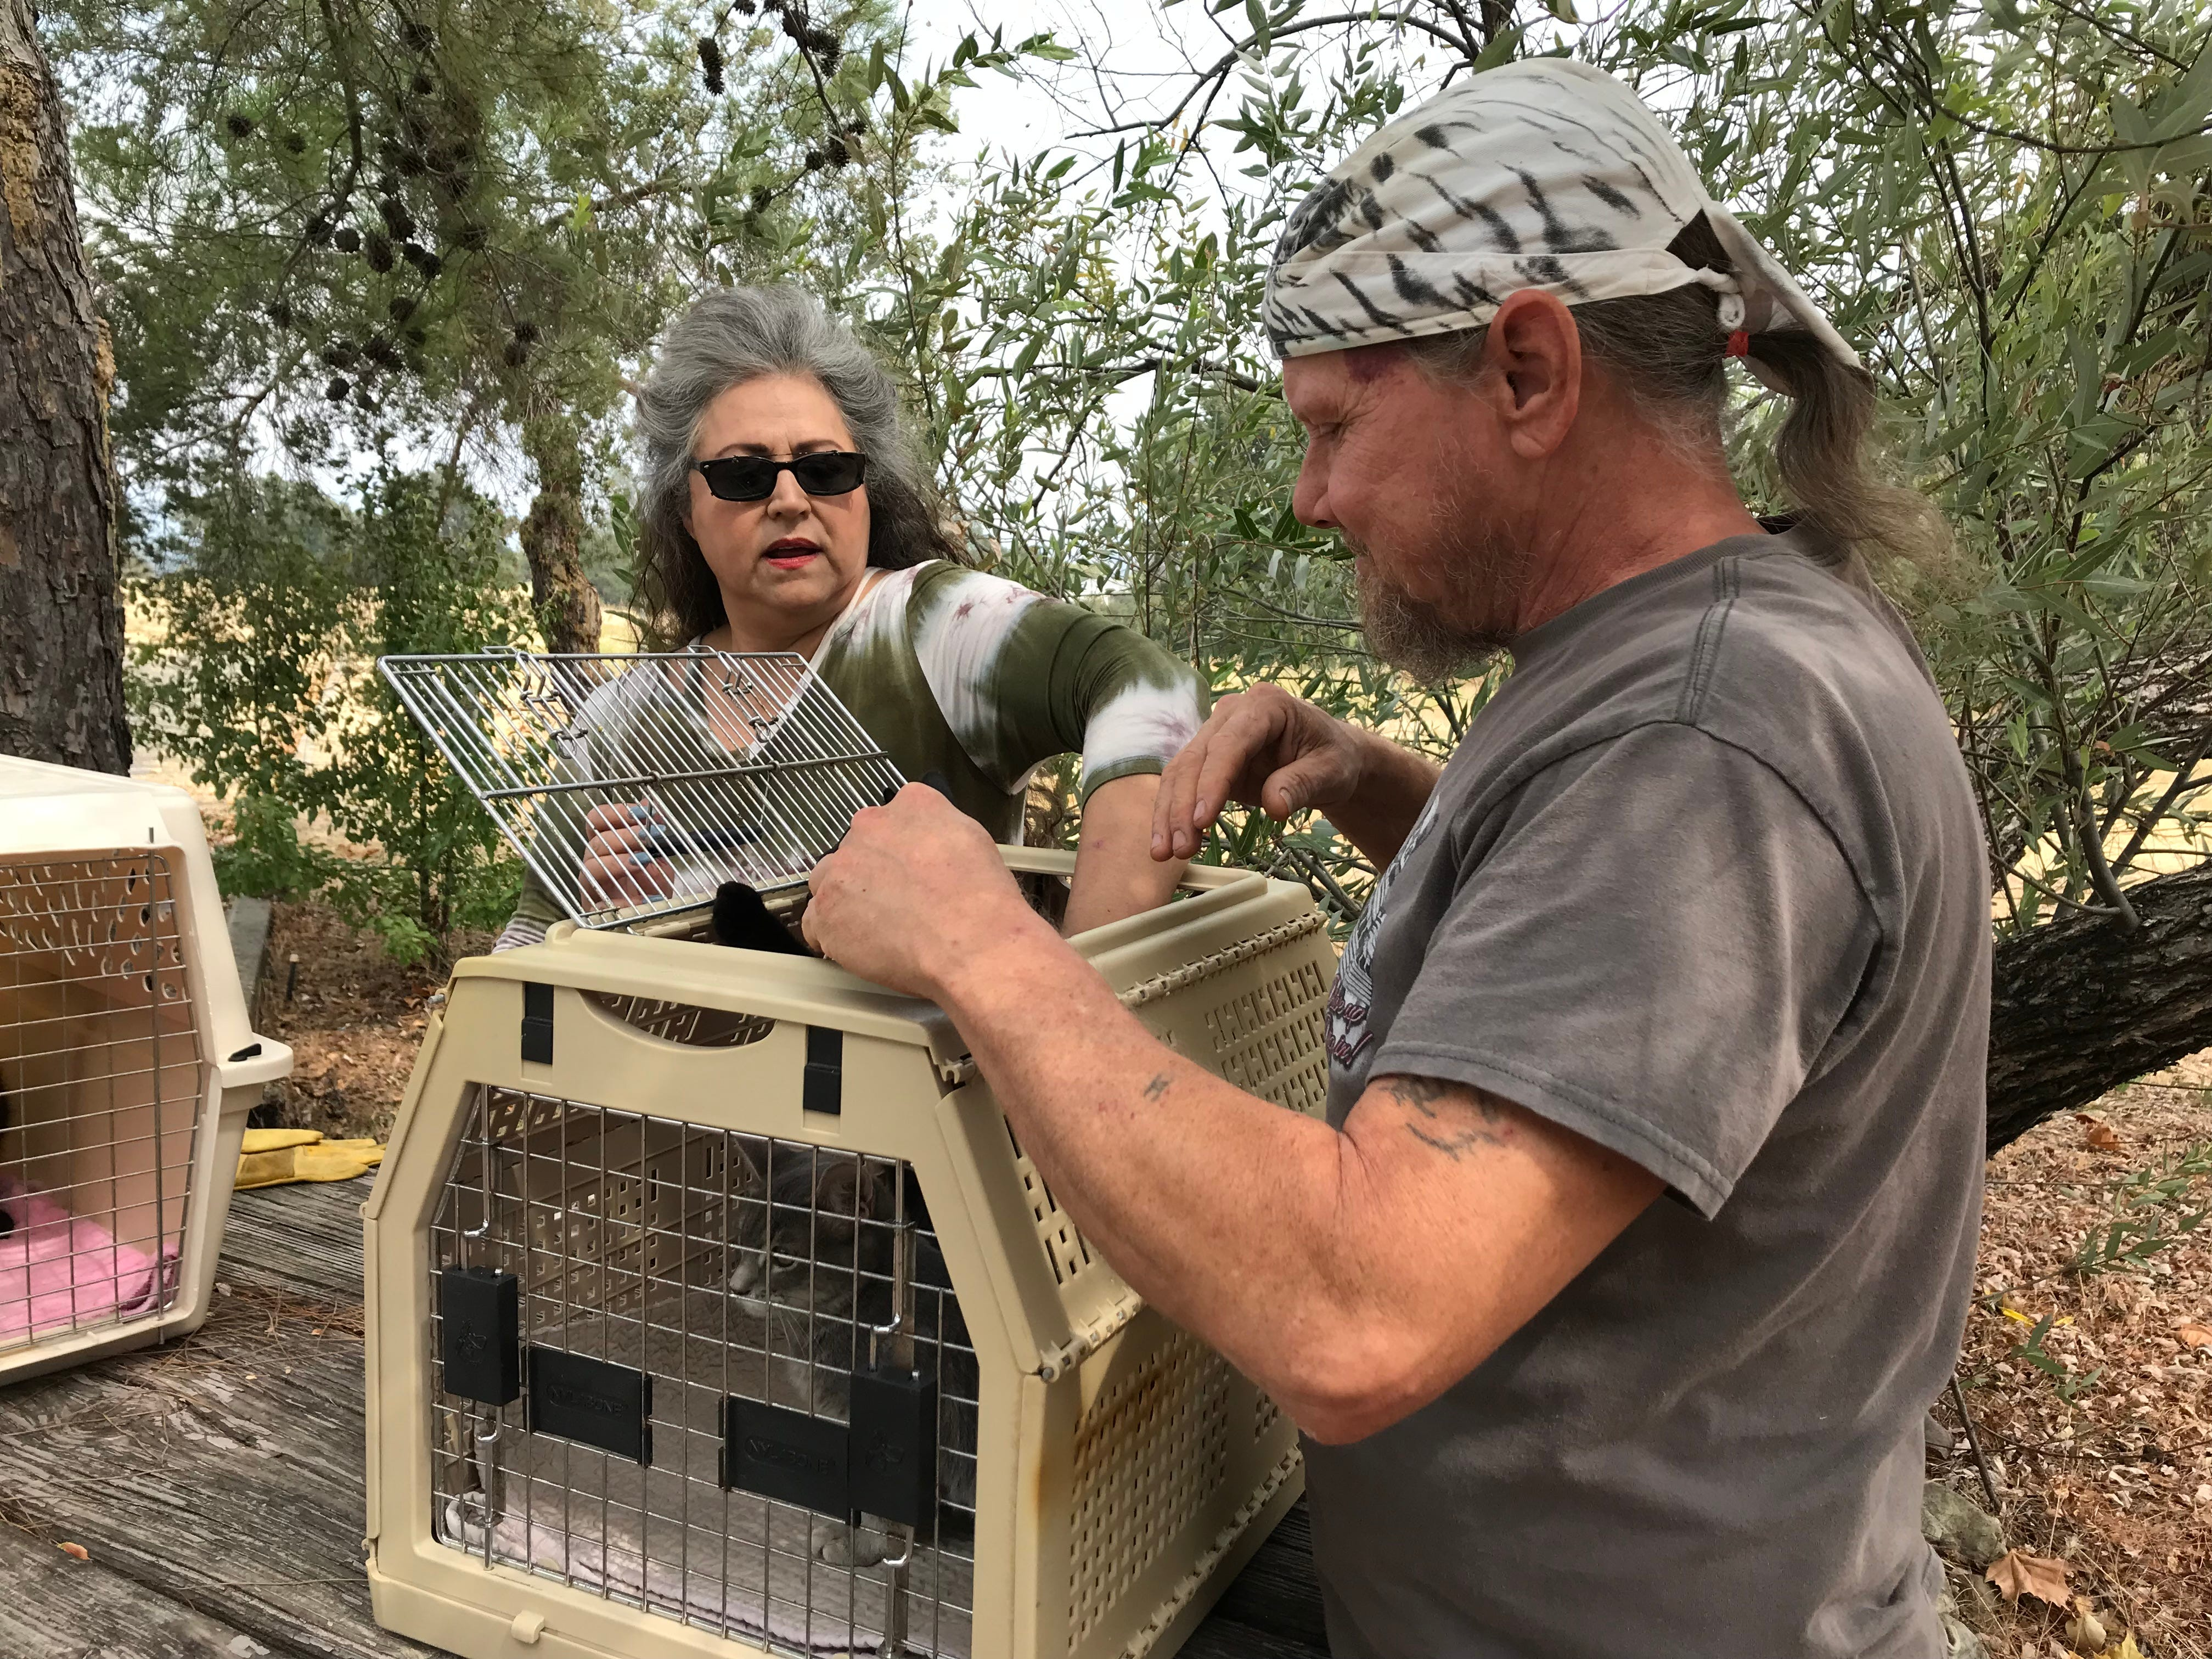 Blanca Jeffers and Rod Durler stop for a break and to give cuddles to two kitten captives. They trap displaced cats in Carr Fire-burned areas for medical care and adoption.